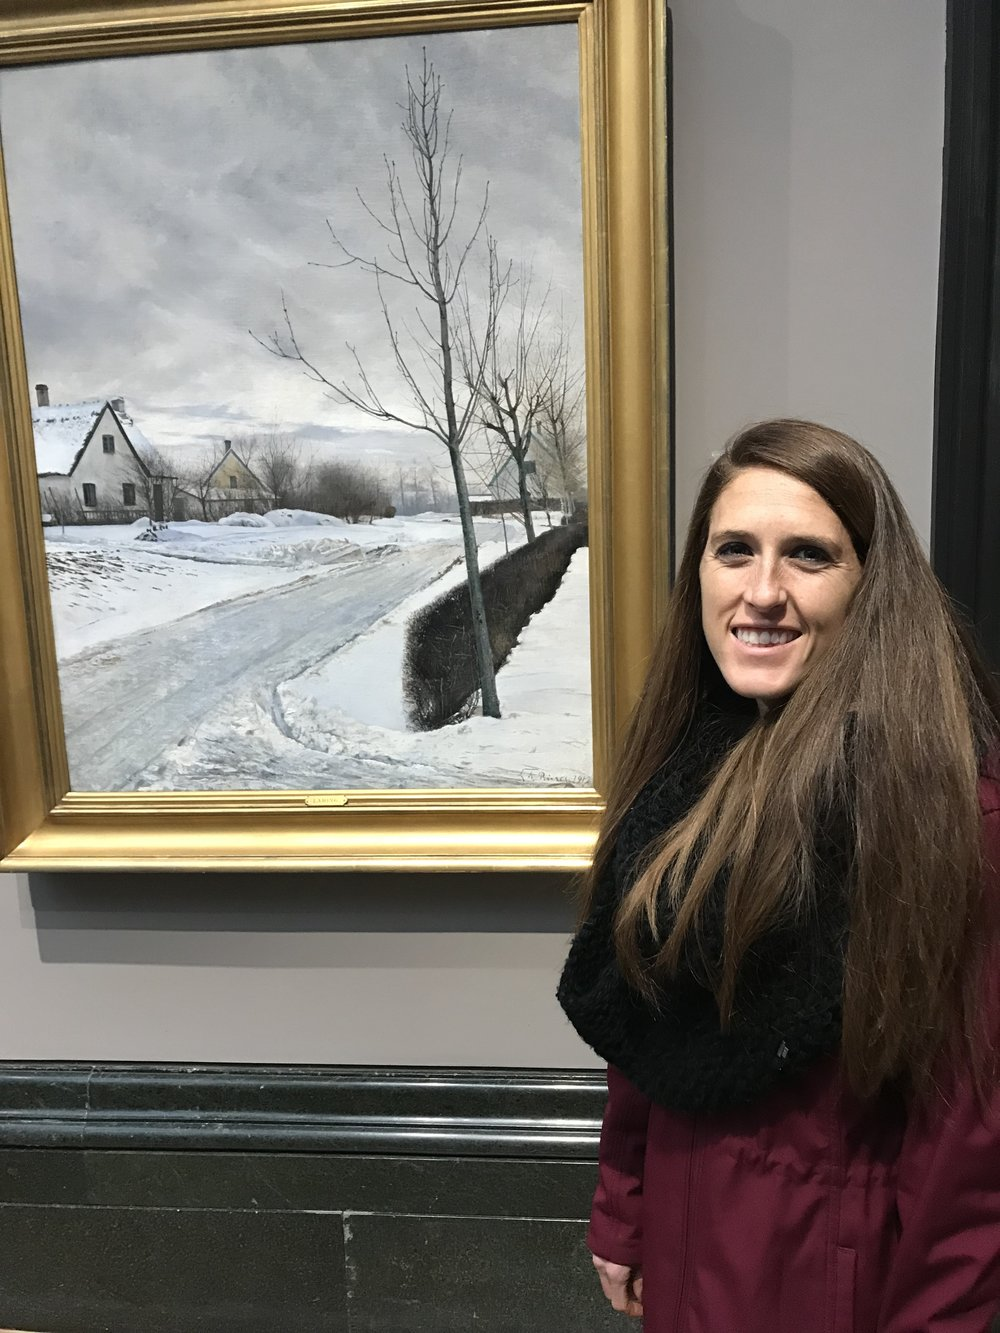 I just really liked this painting because I love snowy cold weather :)